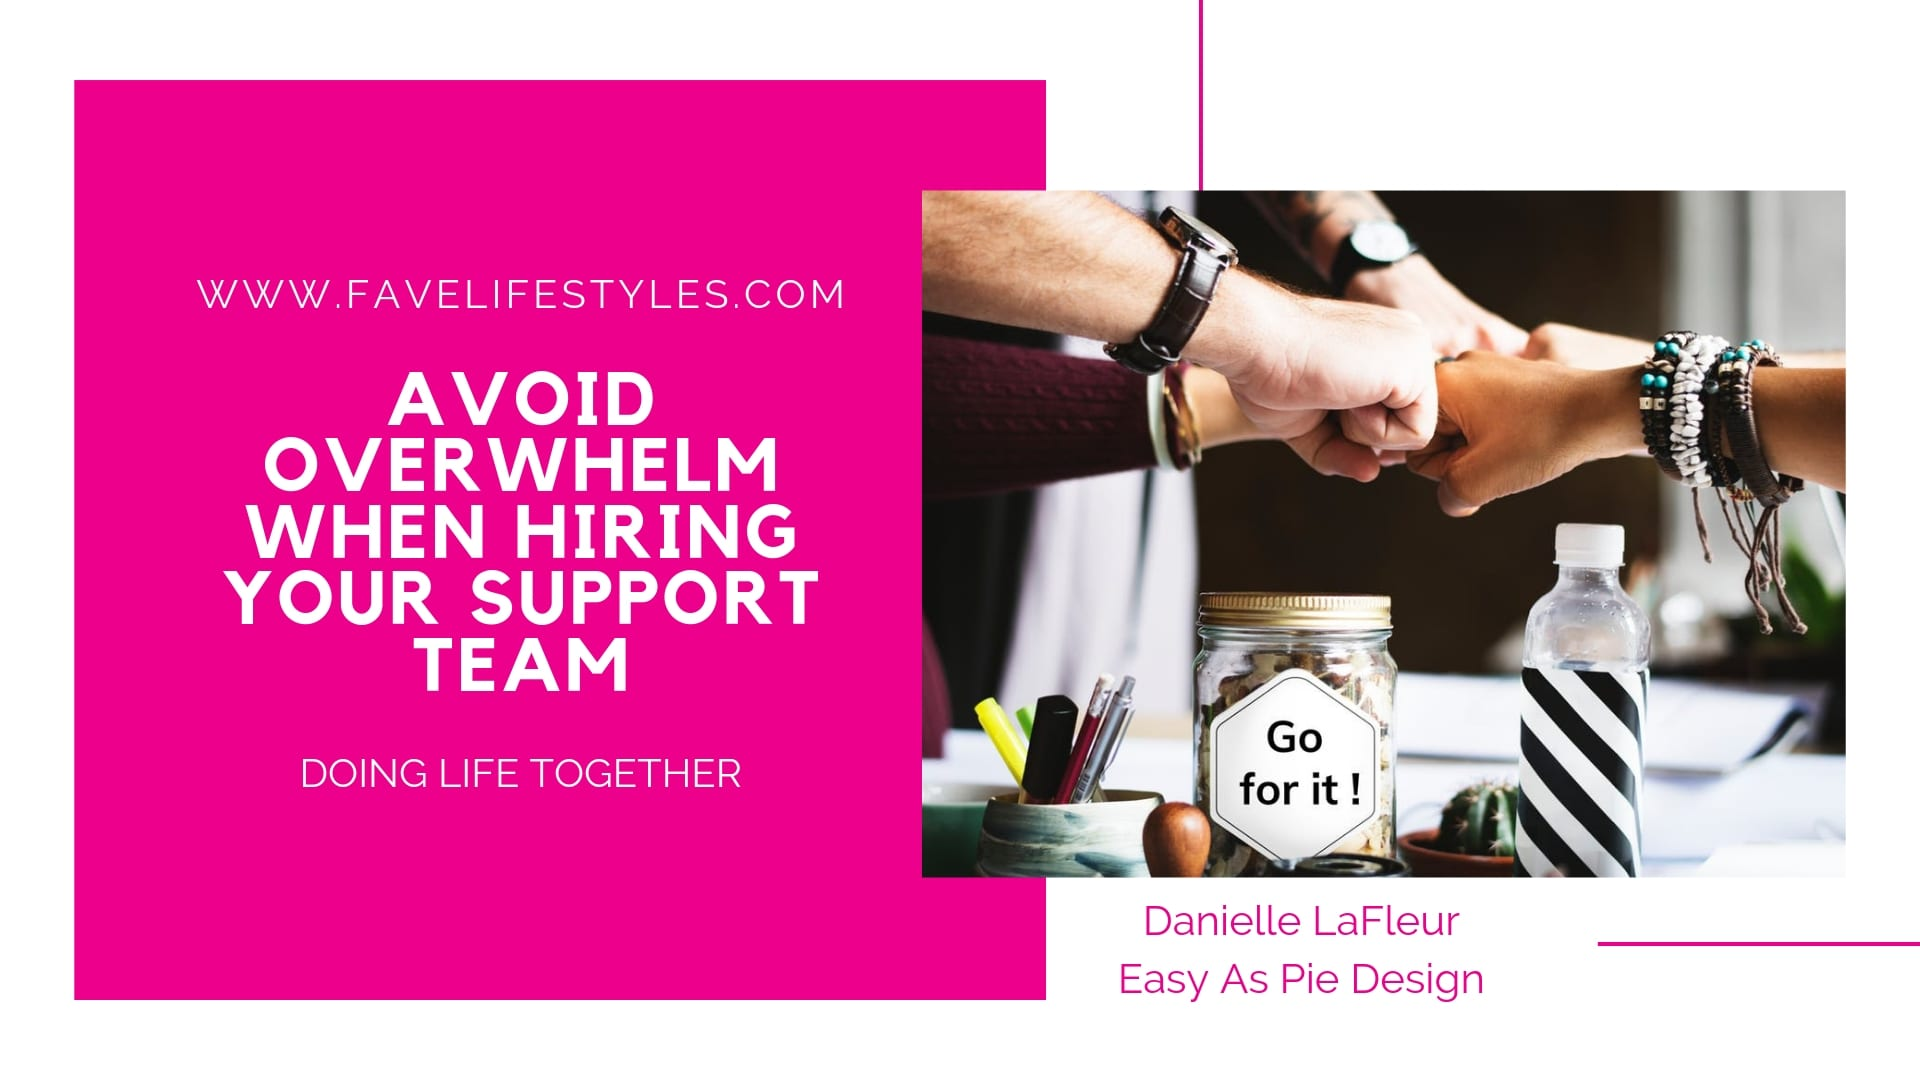 Avoid Overwhelm When Hiring Your Support Team